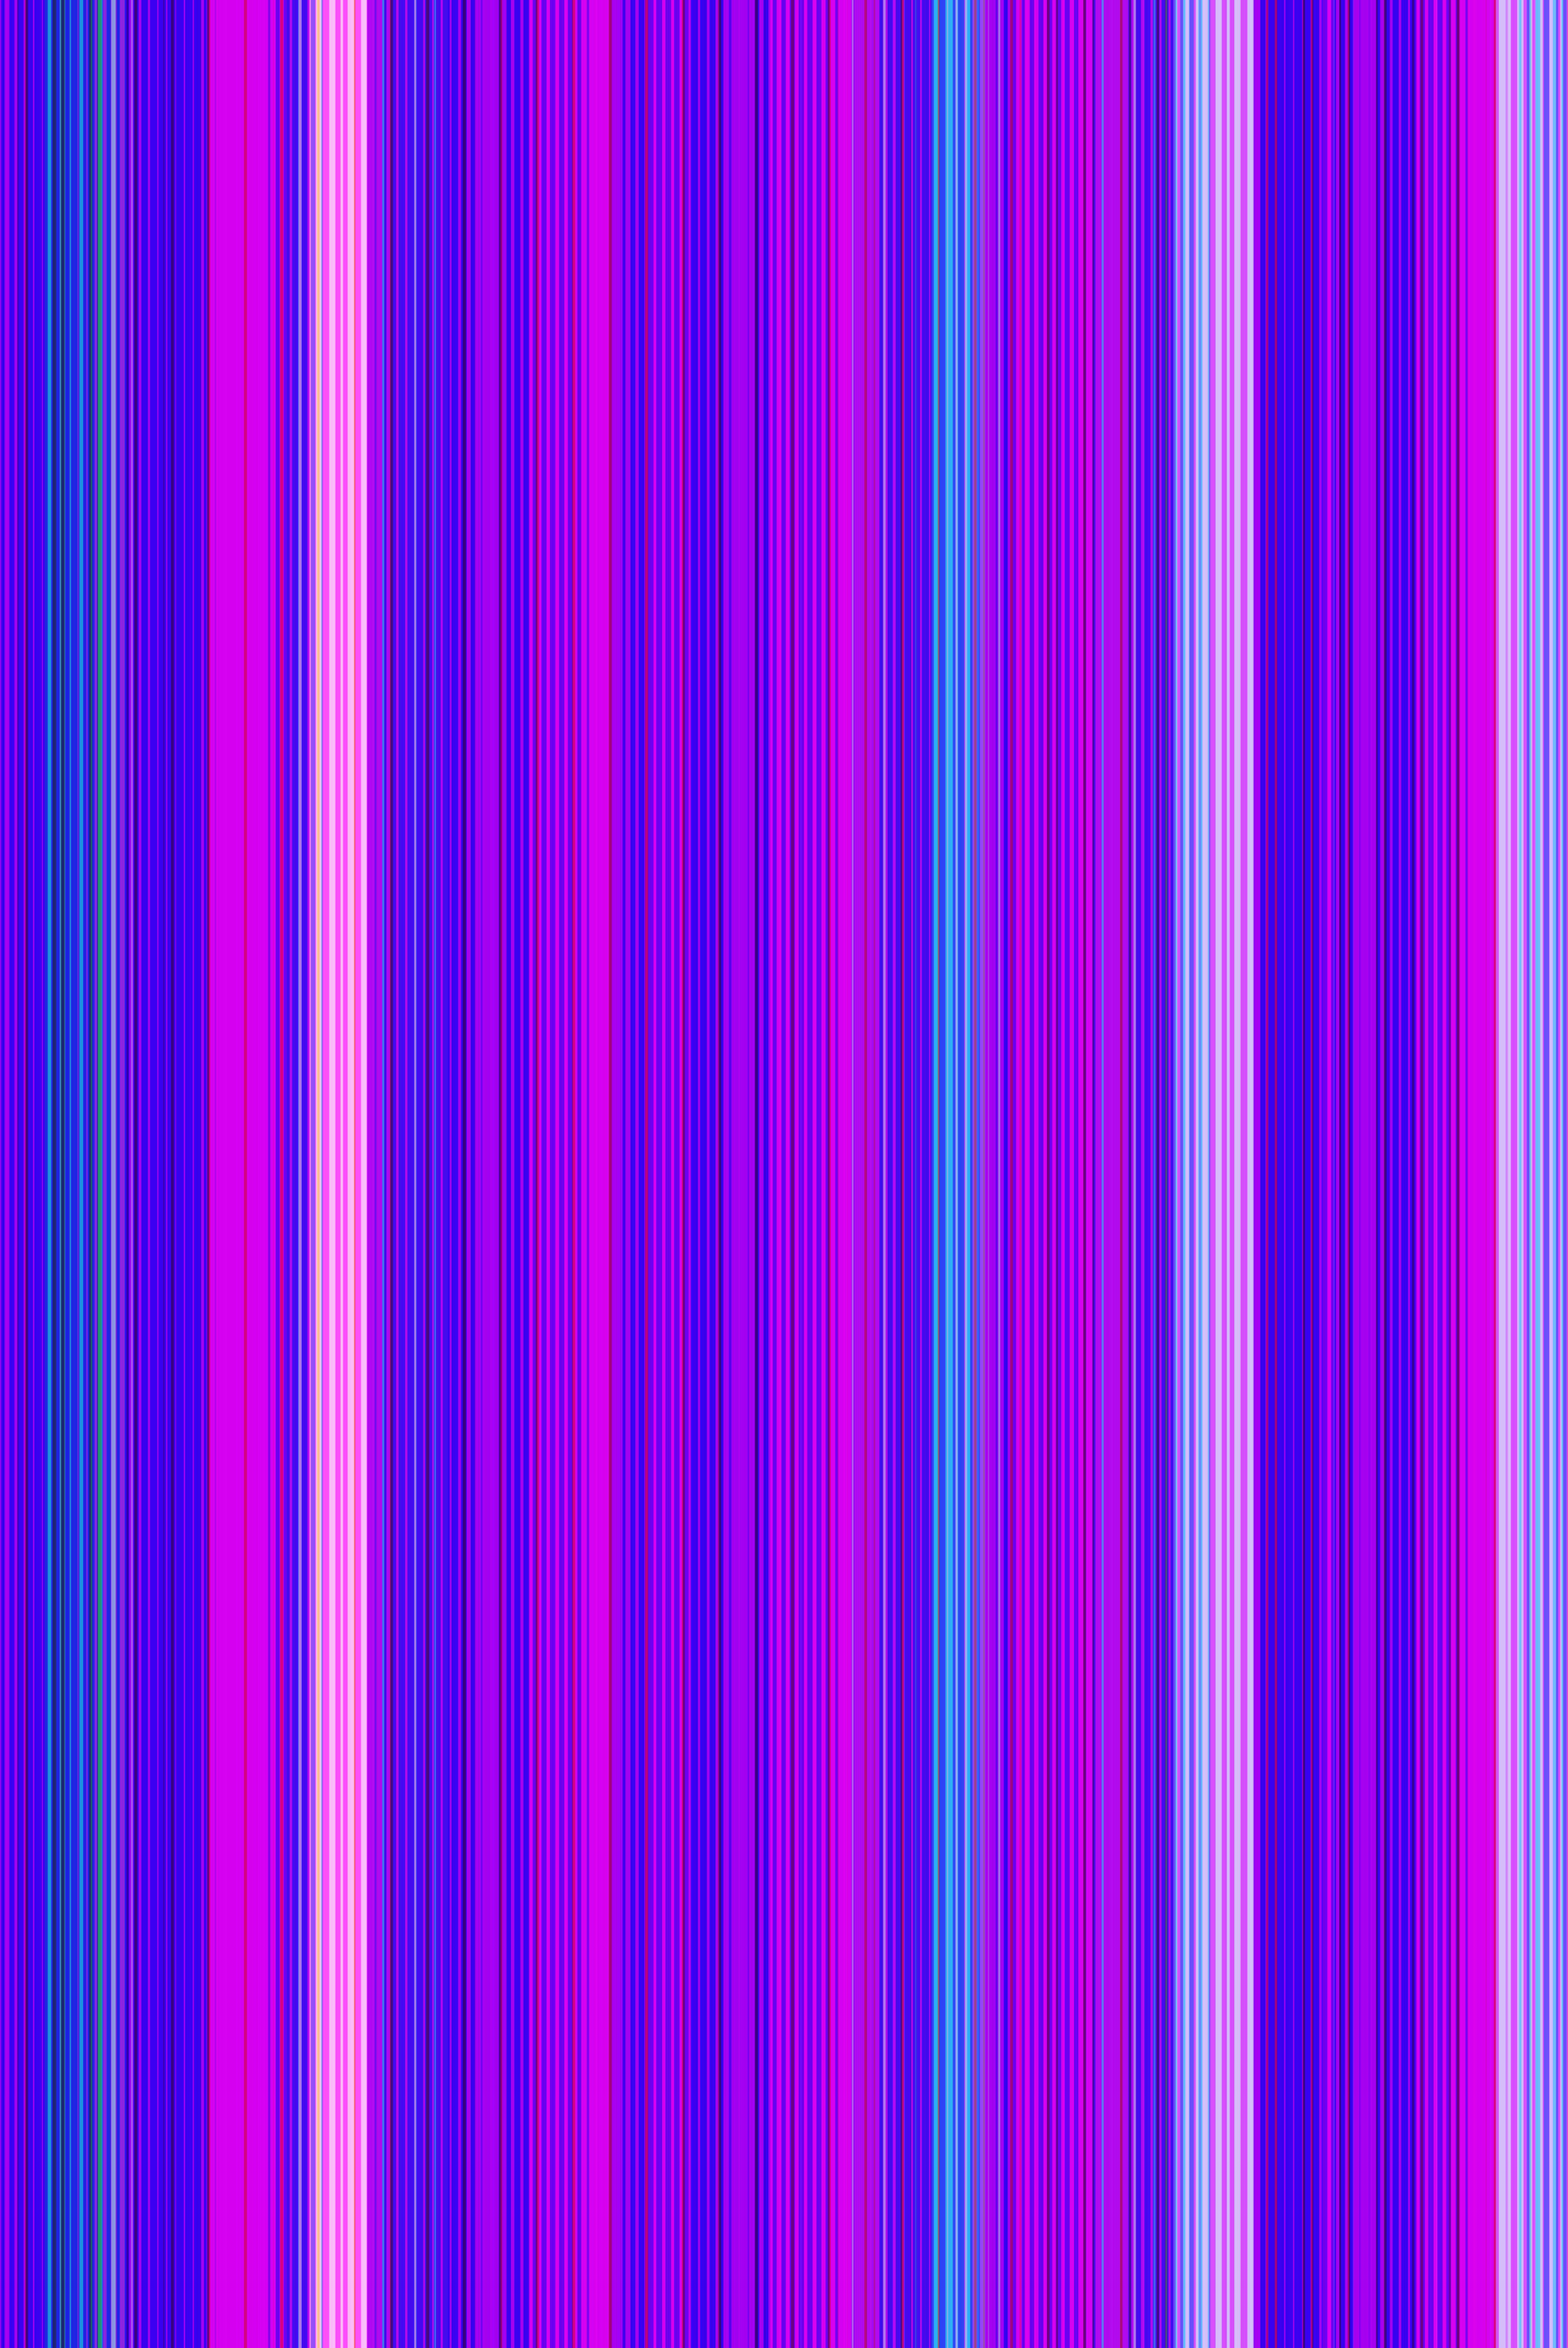 Free stock photo 1504 vivid pink purple bars freeimageslive bright pink and purple palette creating a background vertical lines junglespirit Image collections